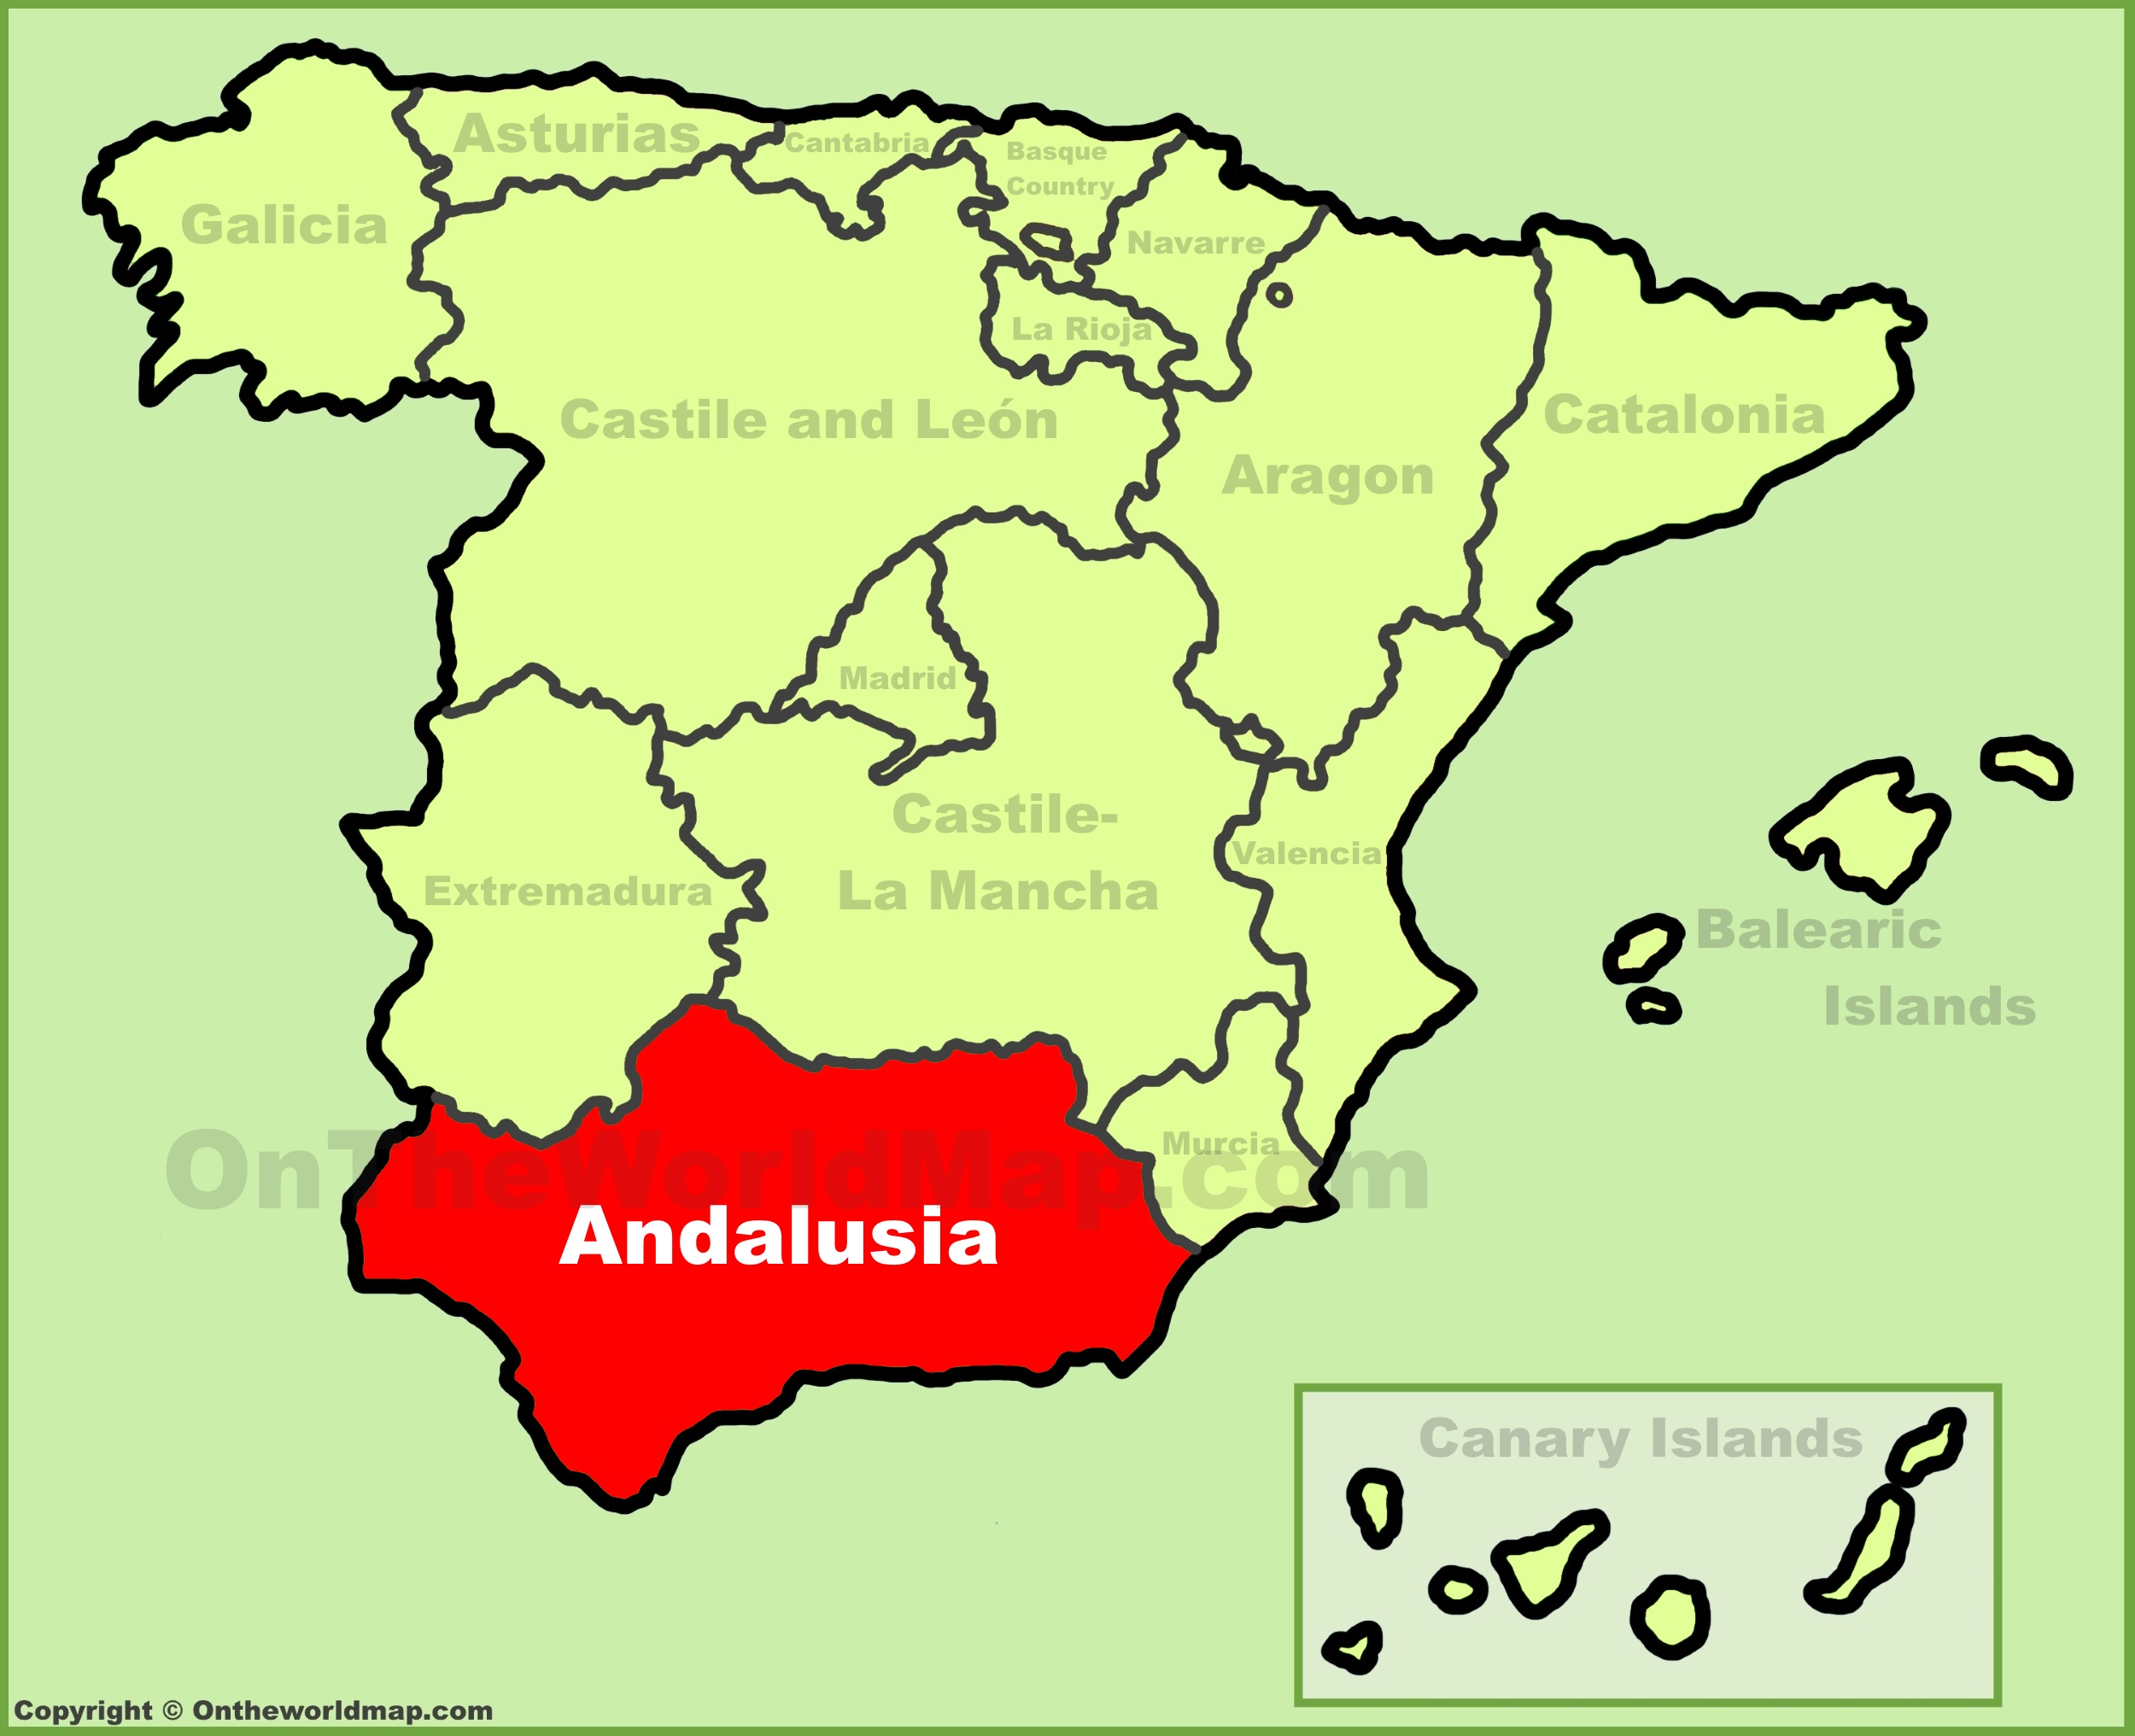 Andalucia On Map Of Spain.Andalusia Location On The Spain Map